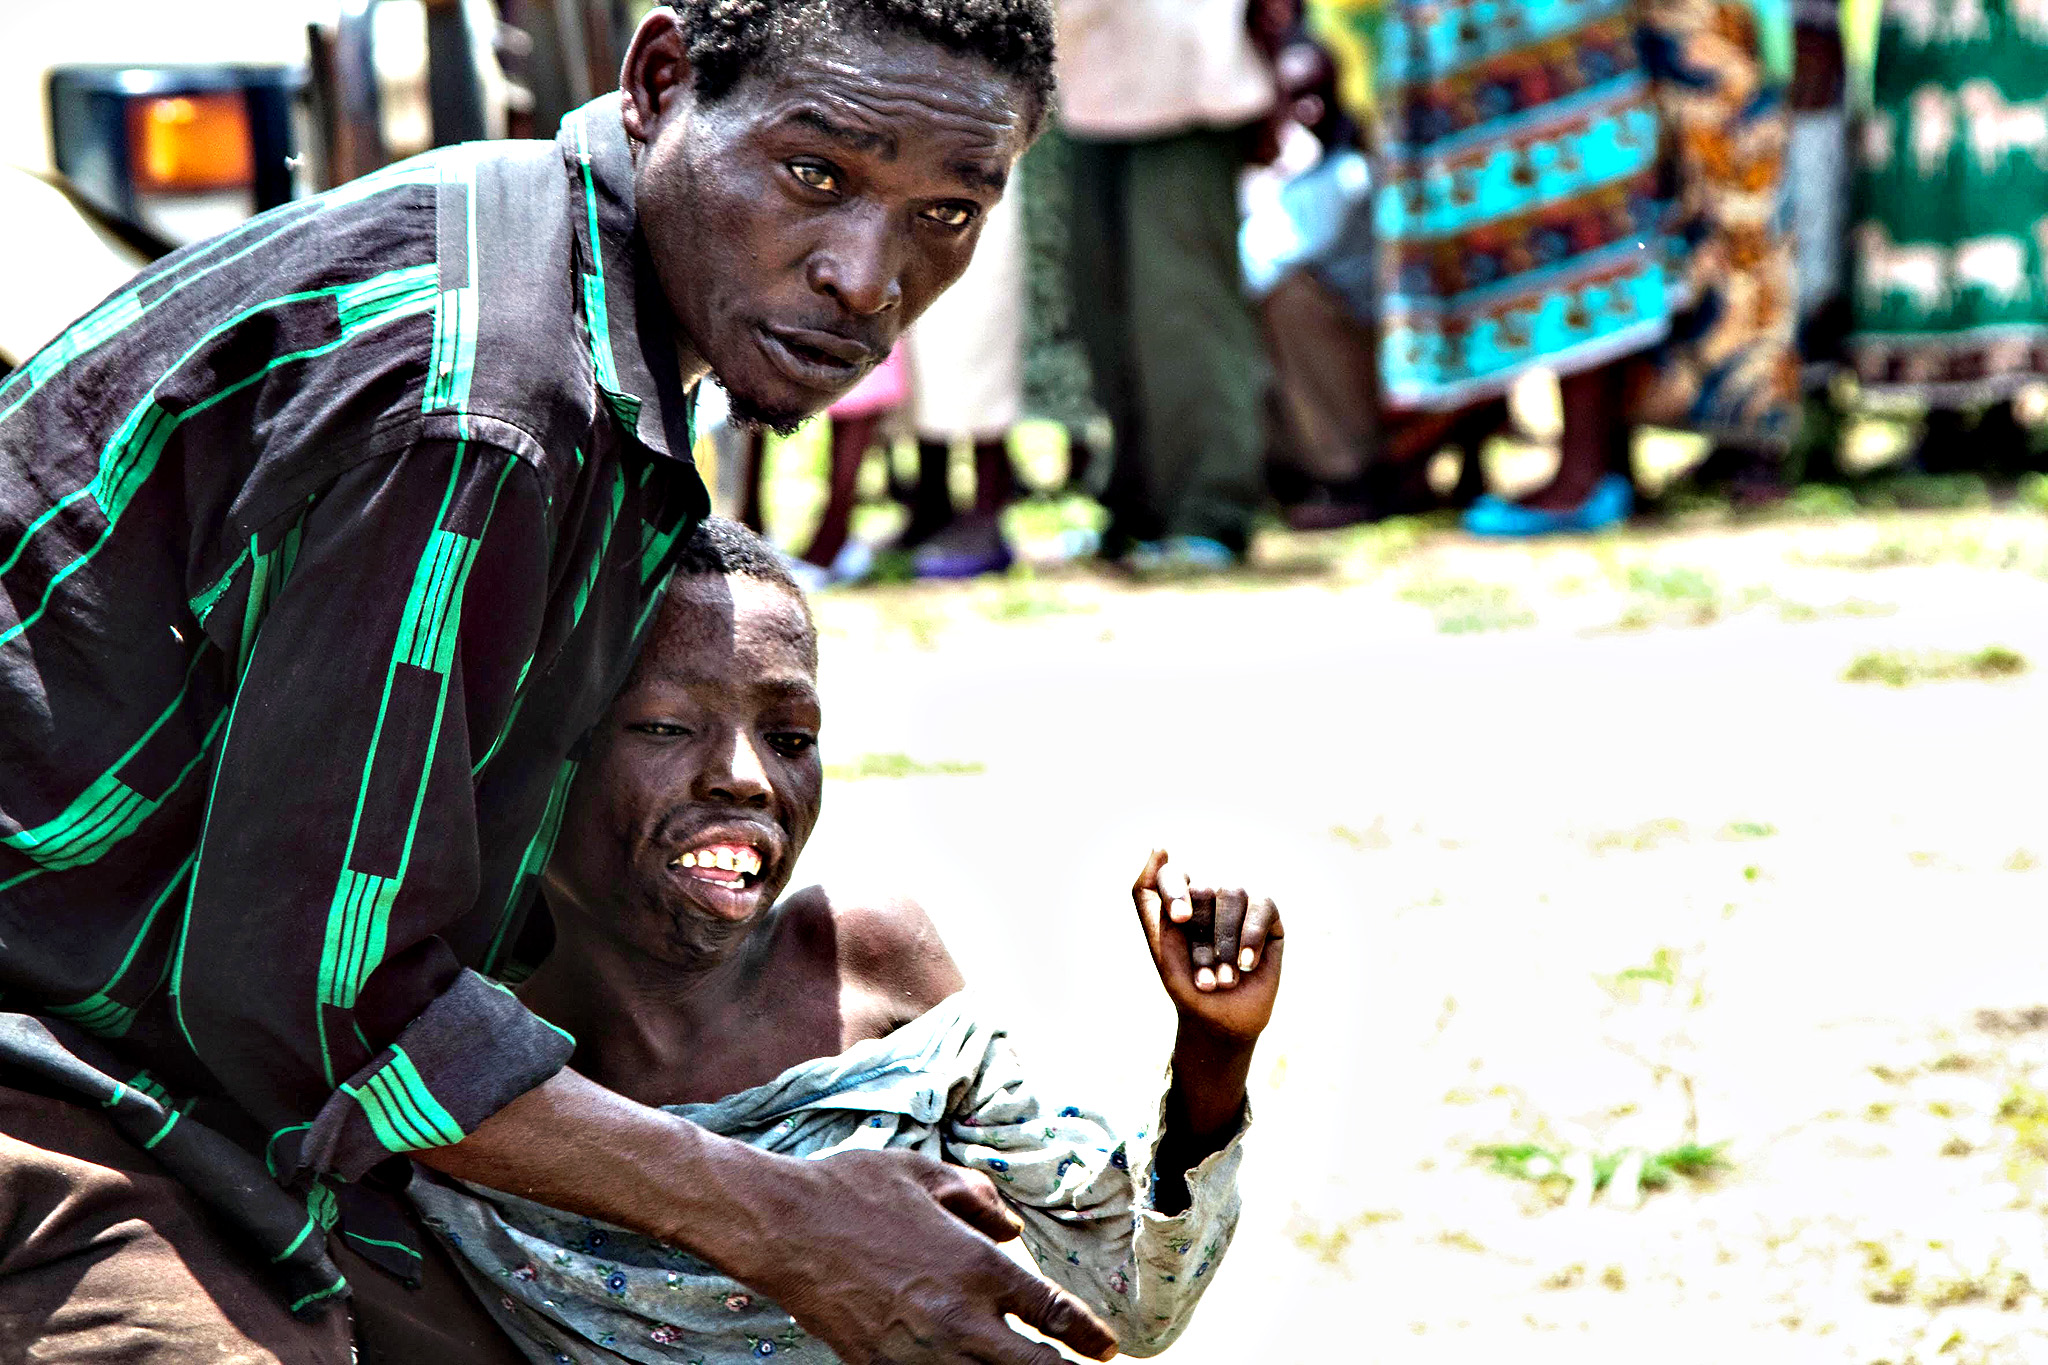 A flood victim attempting to help his disabled child at a food hand-out point in Nchalo, Malawi. The Malawi government has declared half the country a disaster zone after torrential rains killed at least 170 people, left an estimated 100,000 homeless, and destroyed bridges and roads. The death toll had earlier been given as 48. It rose after villagers in the southern district of Nsanje were swept away by swelling rivers. Meteorologists warned that rains could continue for days.